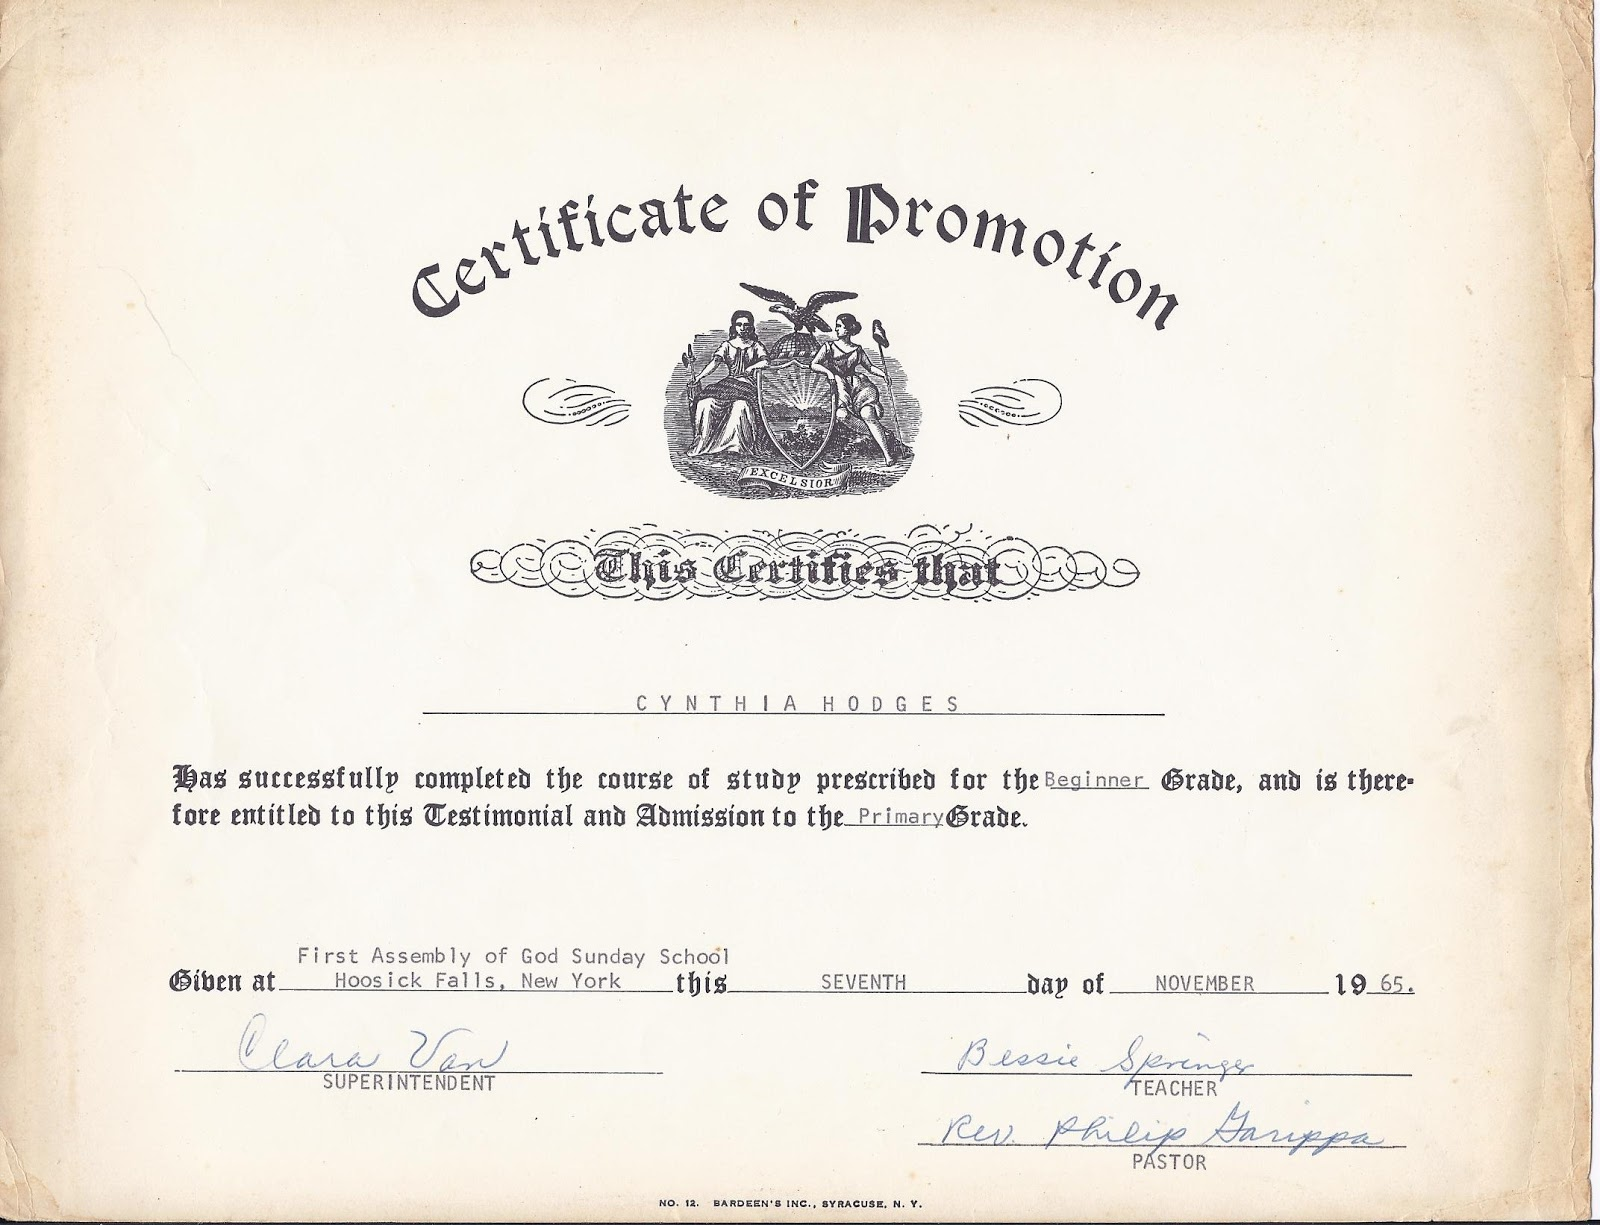 family happenings certificate of promotion